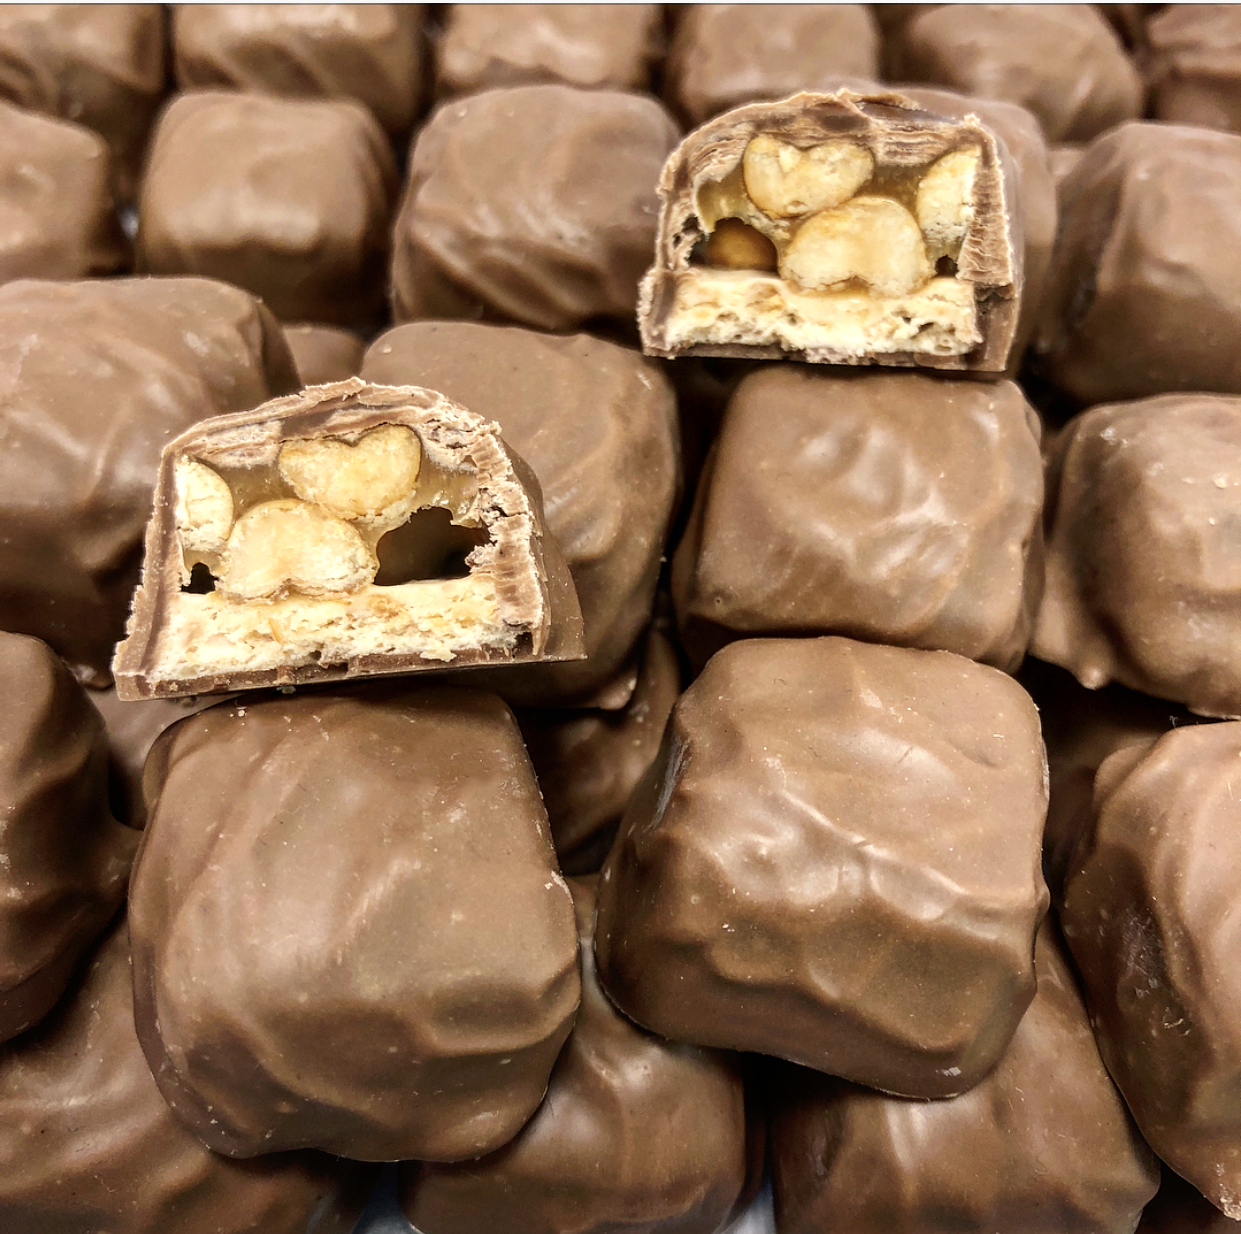 Dunmore Candy Kitchen Posts: Chocolate Peanut Caramel Nougatine • Dunmore Candy Kitchen